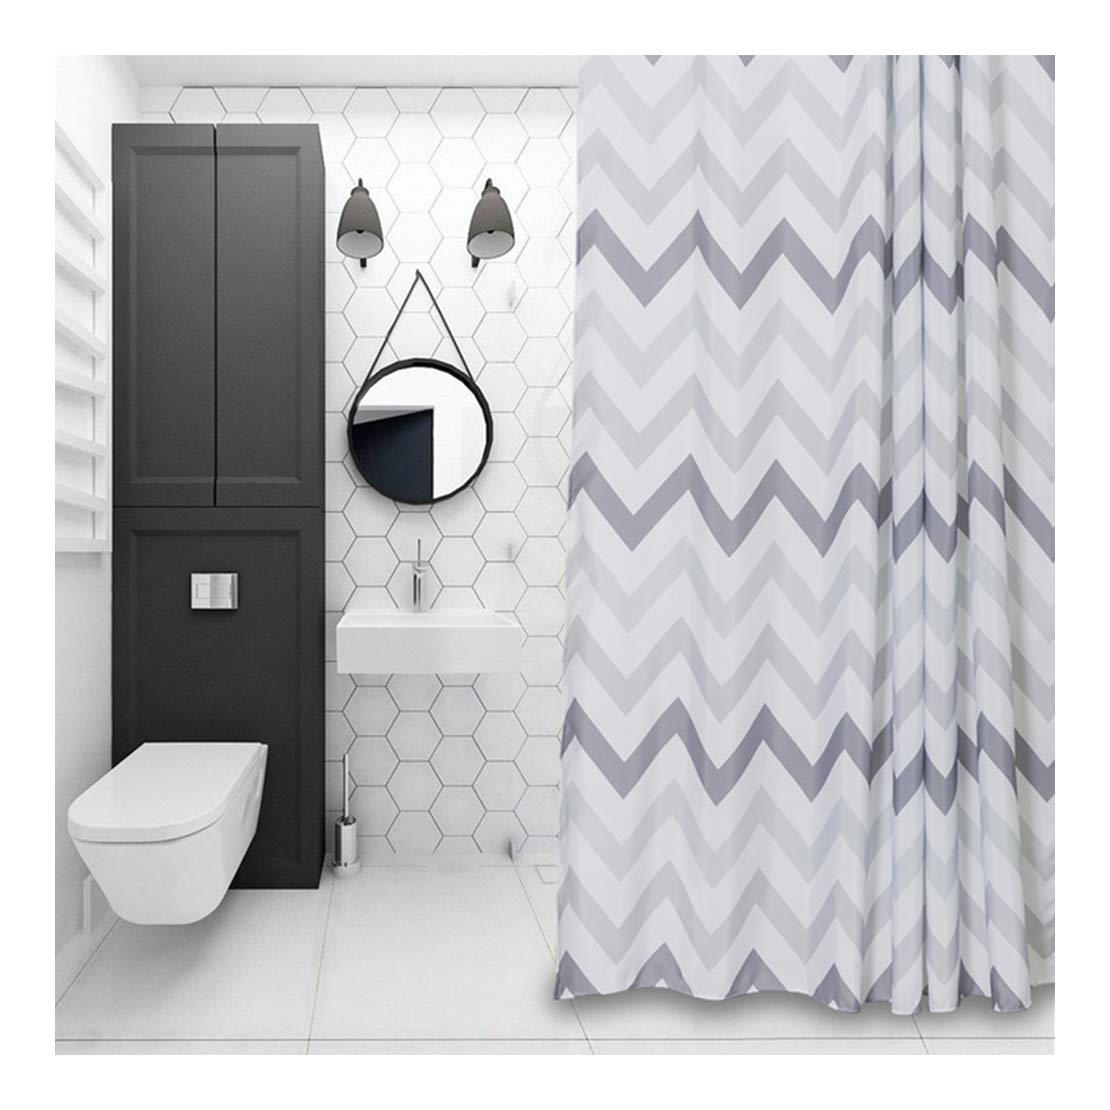 Amazon Aimjerry Chevron Fabric Shower Curtain GreyWhiteStriped Mold Resistant 72 X 72Geometric Home Kitchen